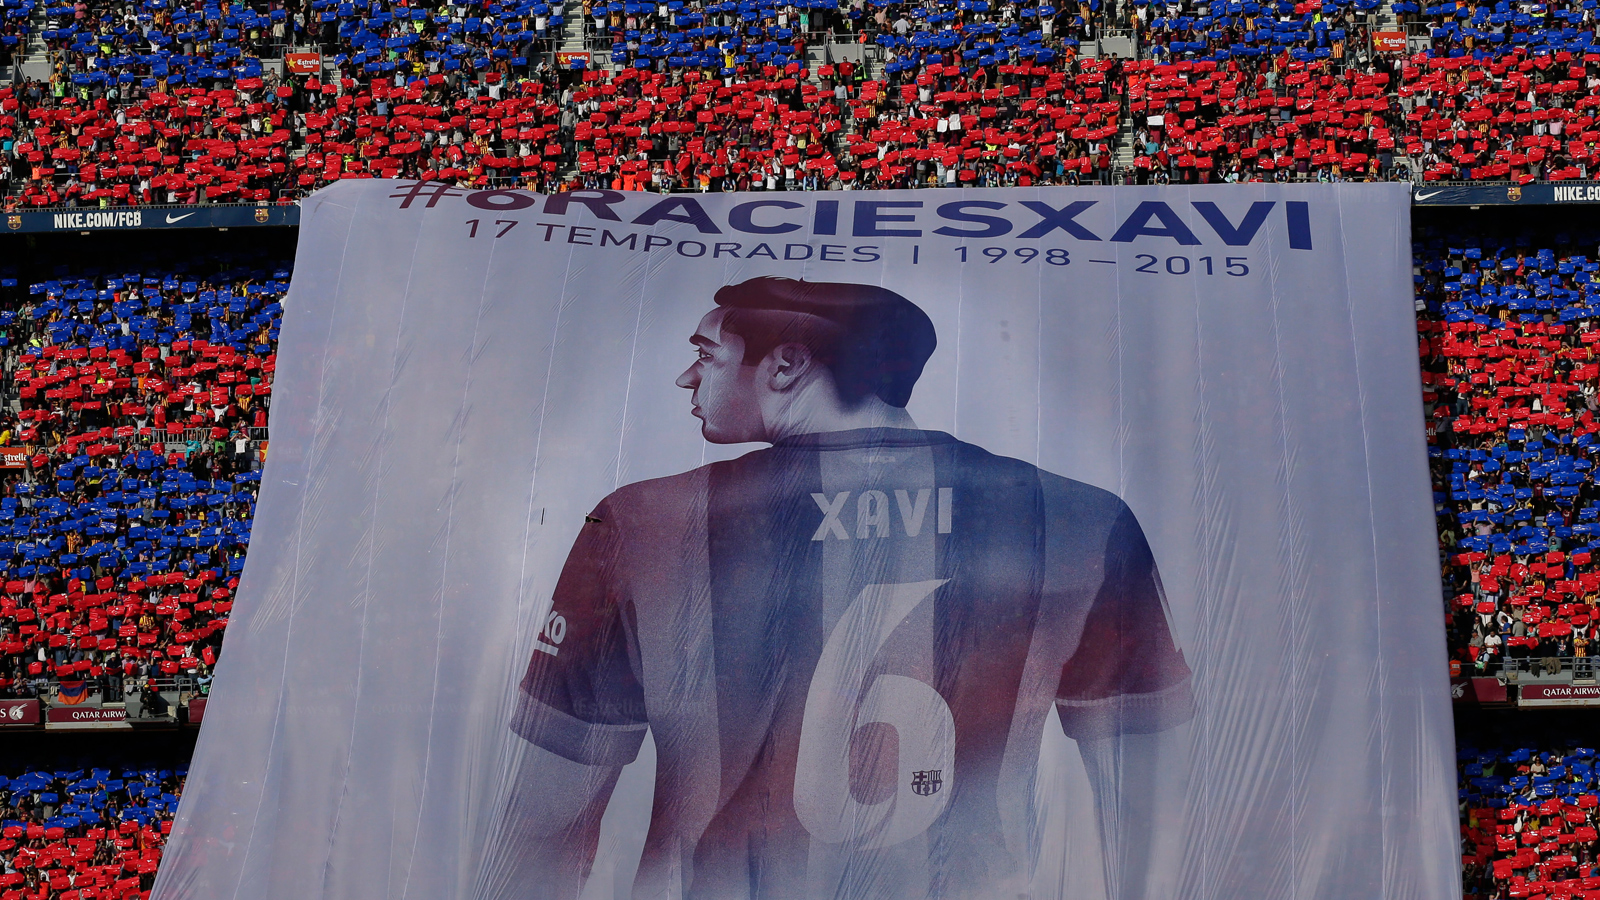 Barcelona fans bid farewell to veteran midfielder Xavi with this banner at his last league game at Camp Nou before he departs for Qatari club Al Sadd.